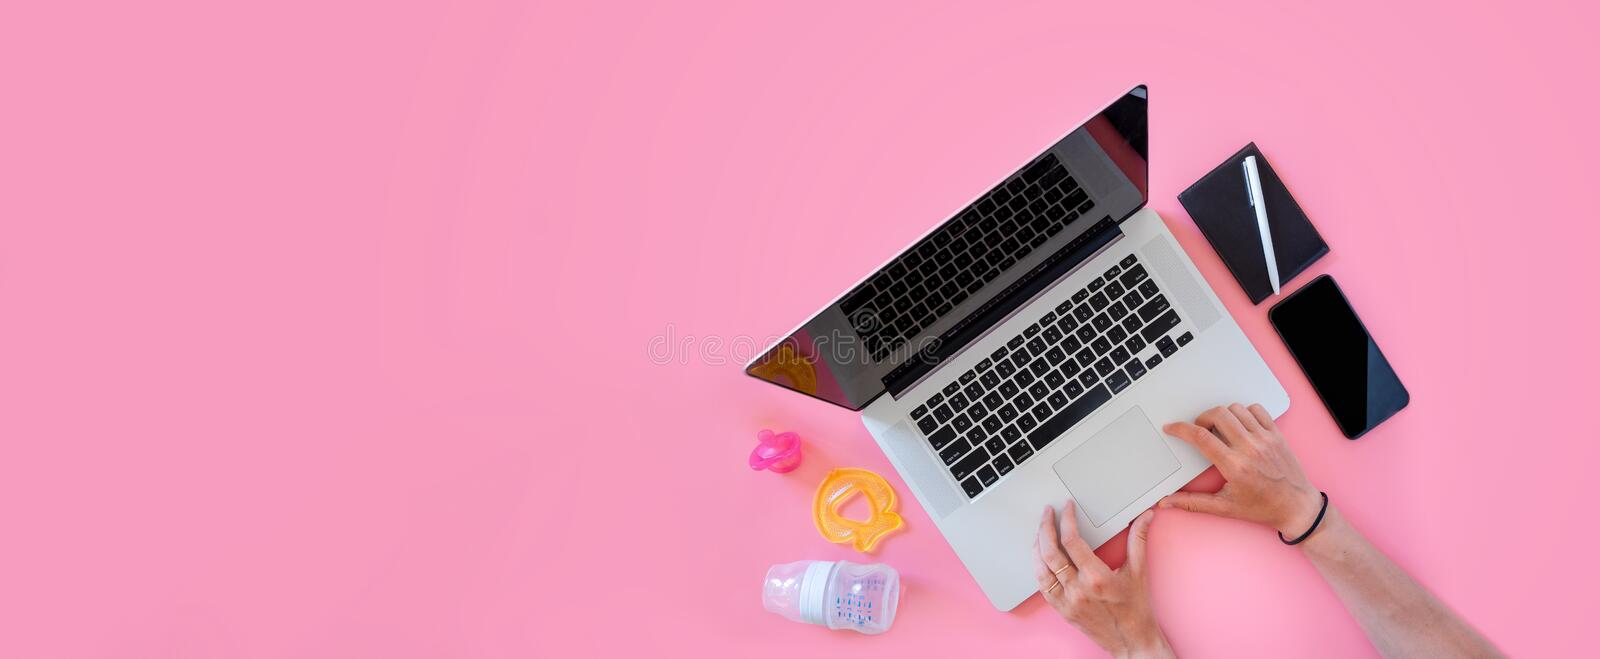 Working mom top view flatlay of workplace baby items and laptop with phone stock photography